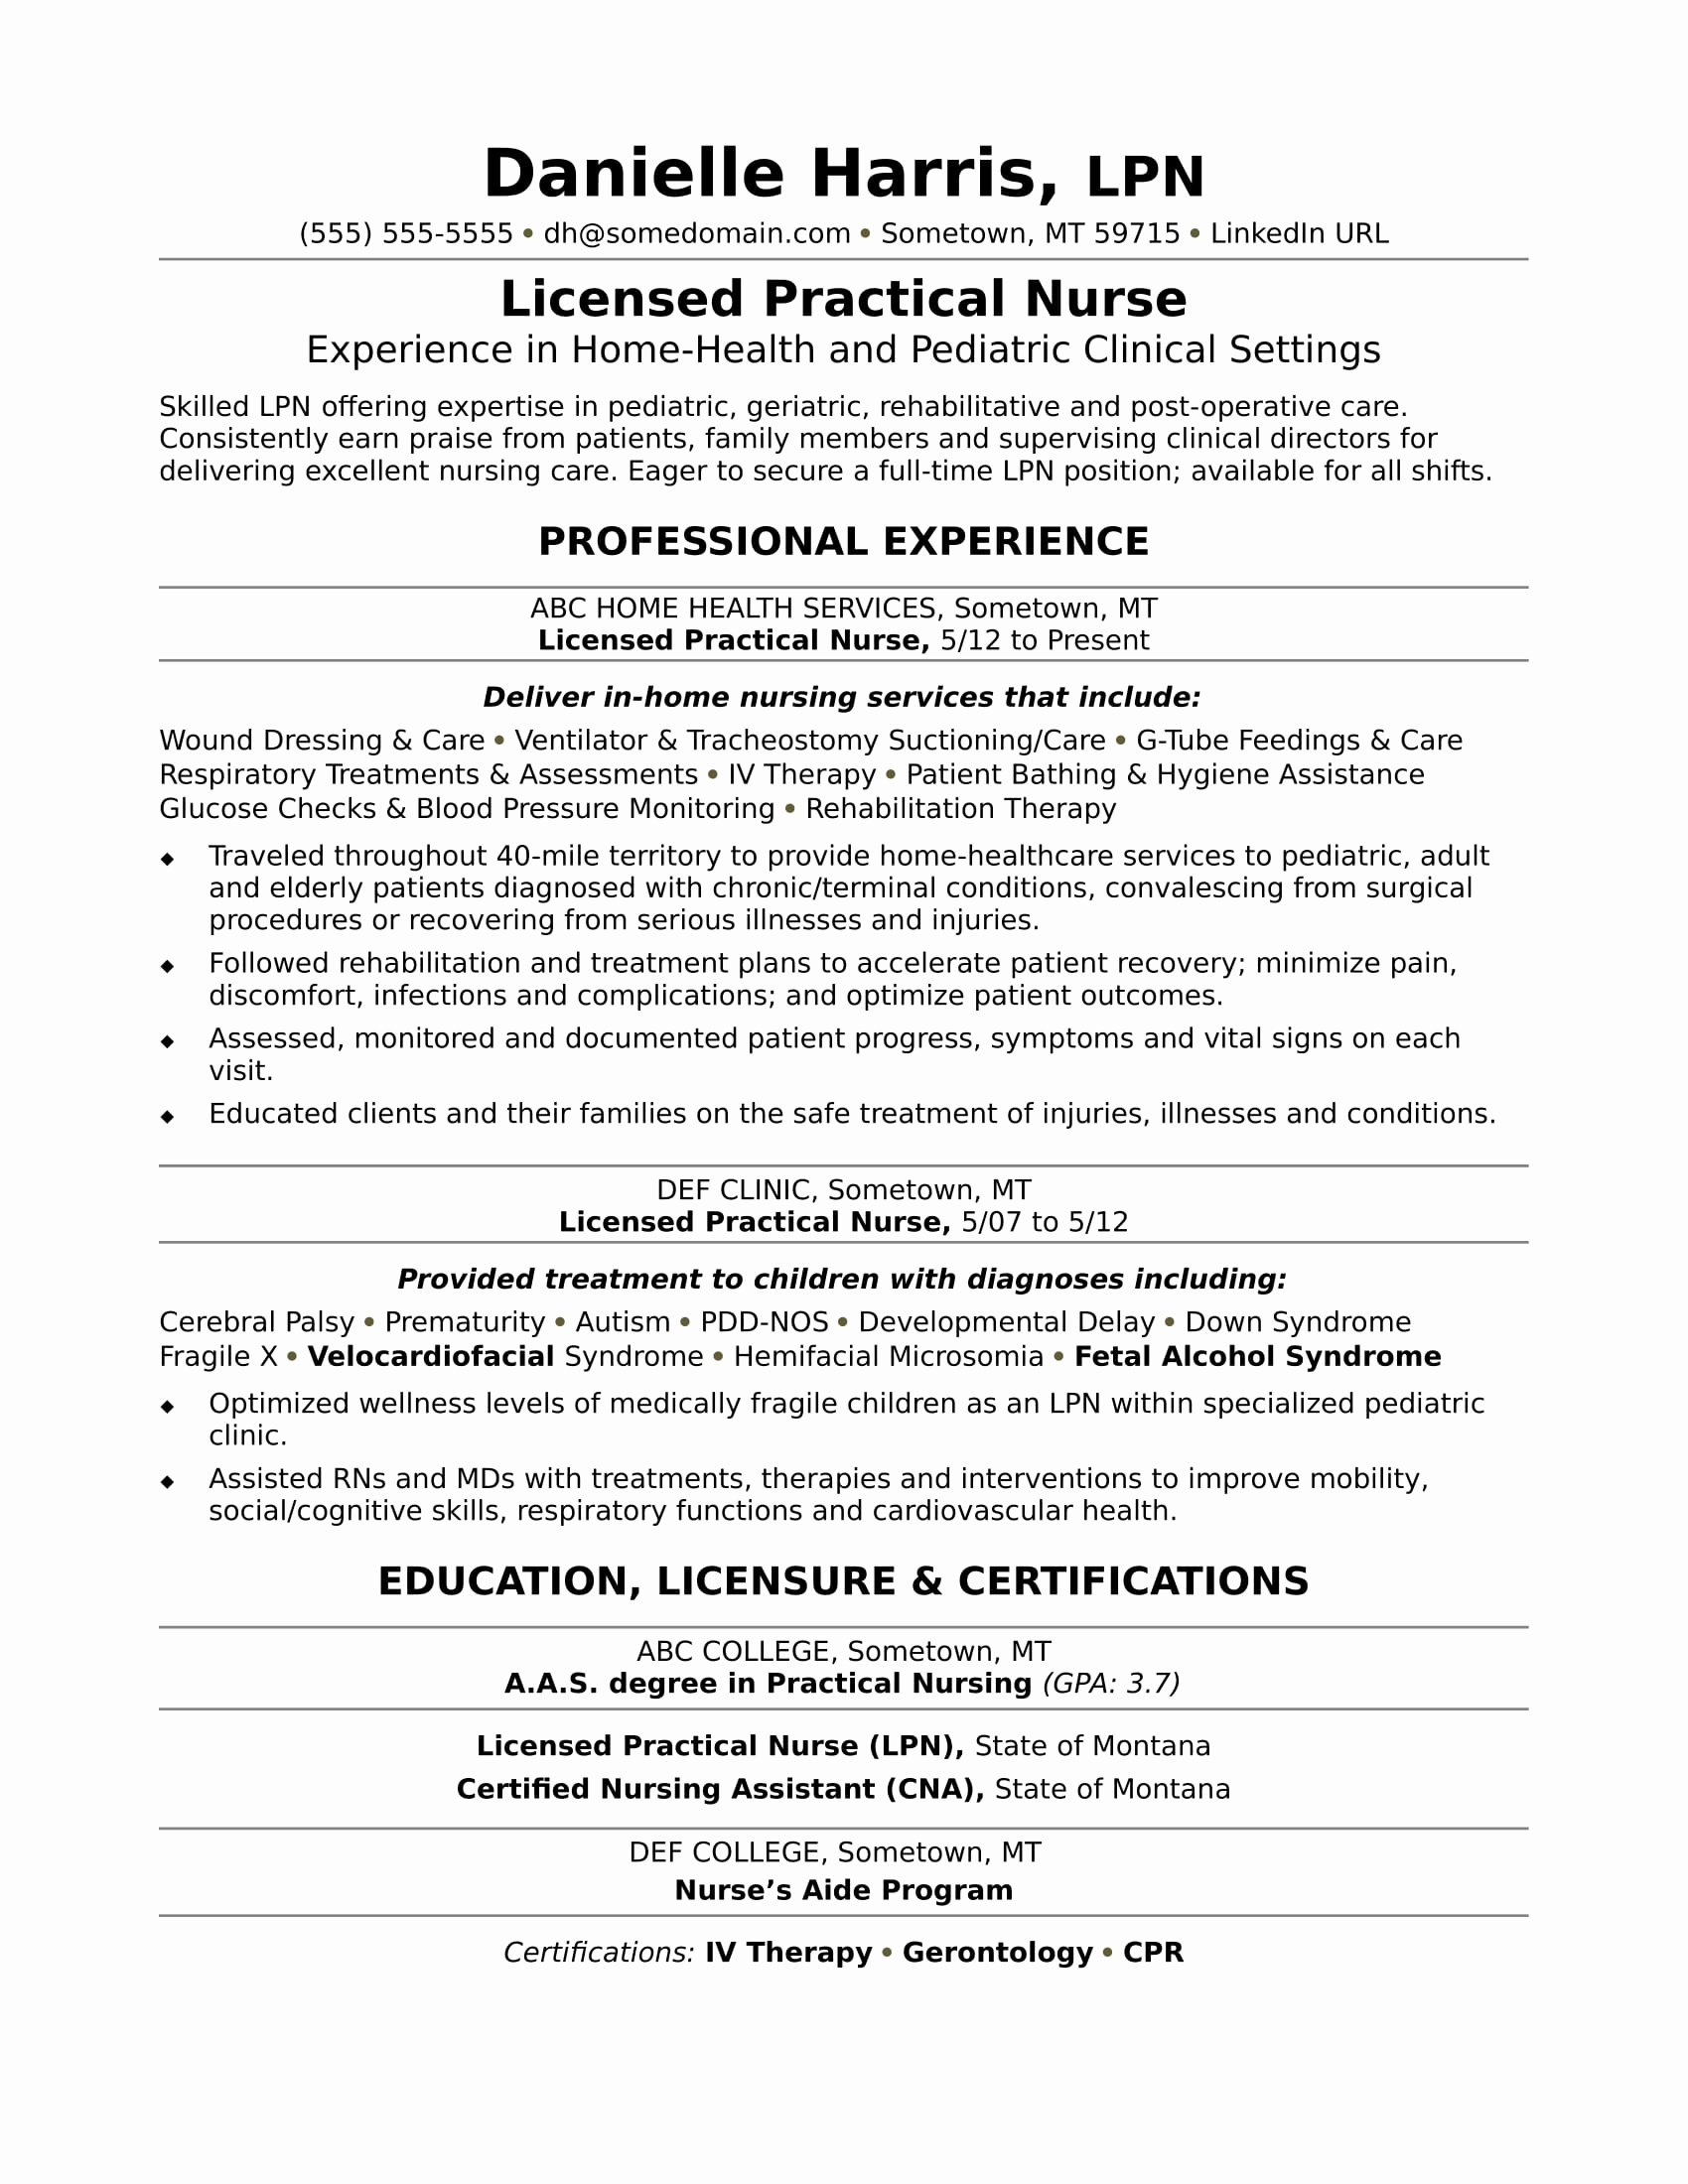 Nursing Student Resume Template Awesome Licensed Practical Nurse Resume Sample